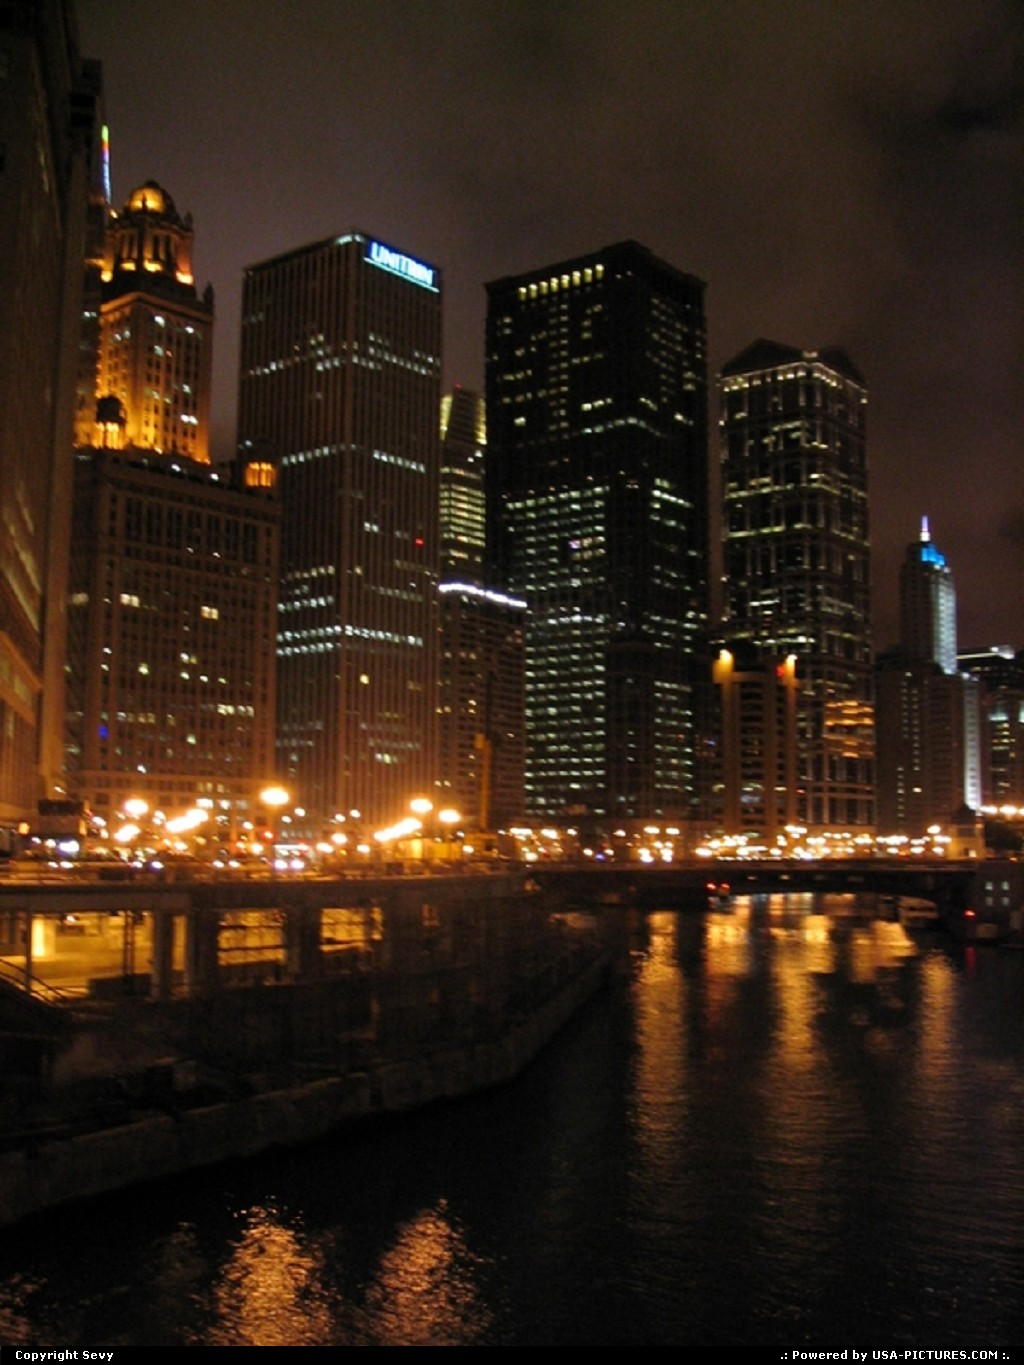 Picture by Sevy:ChicagoIllinois